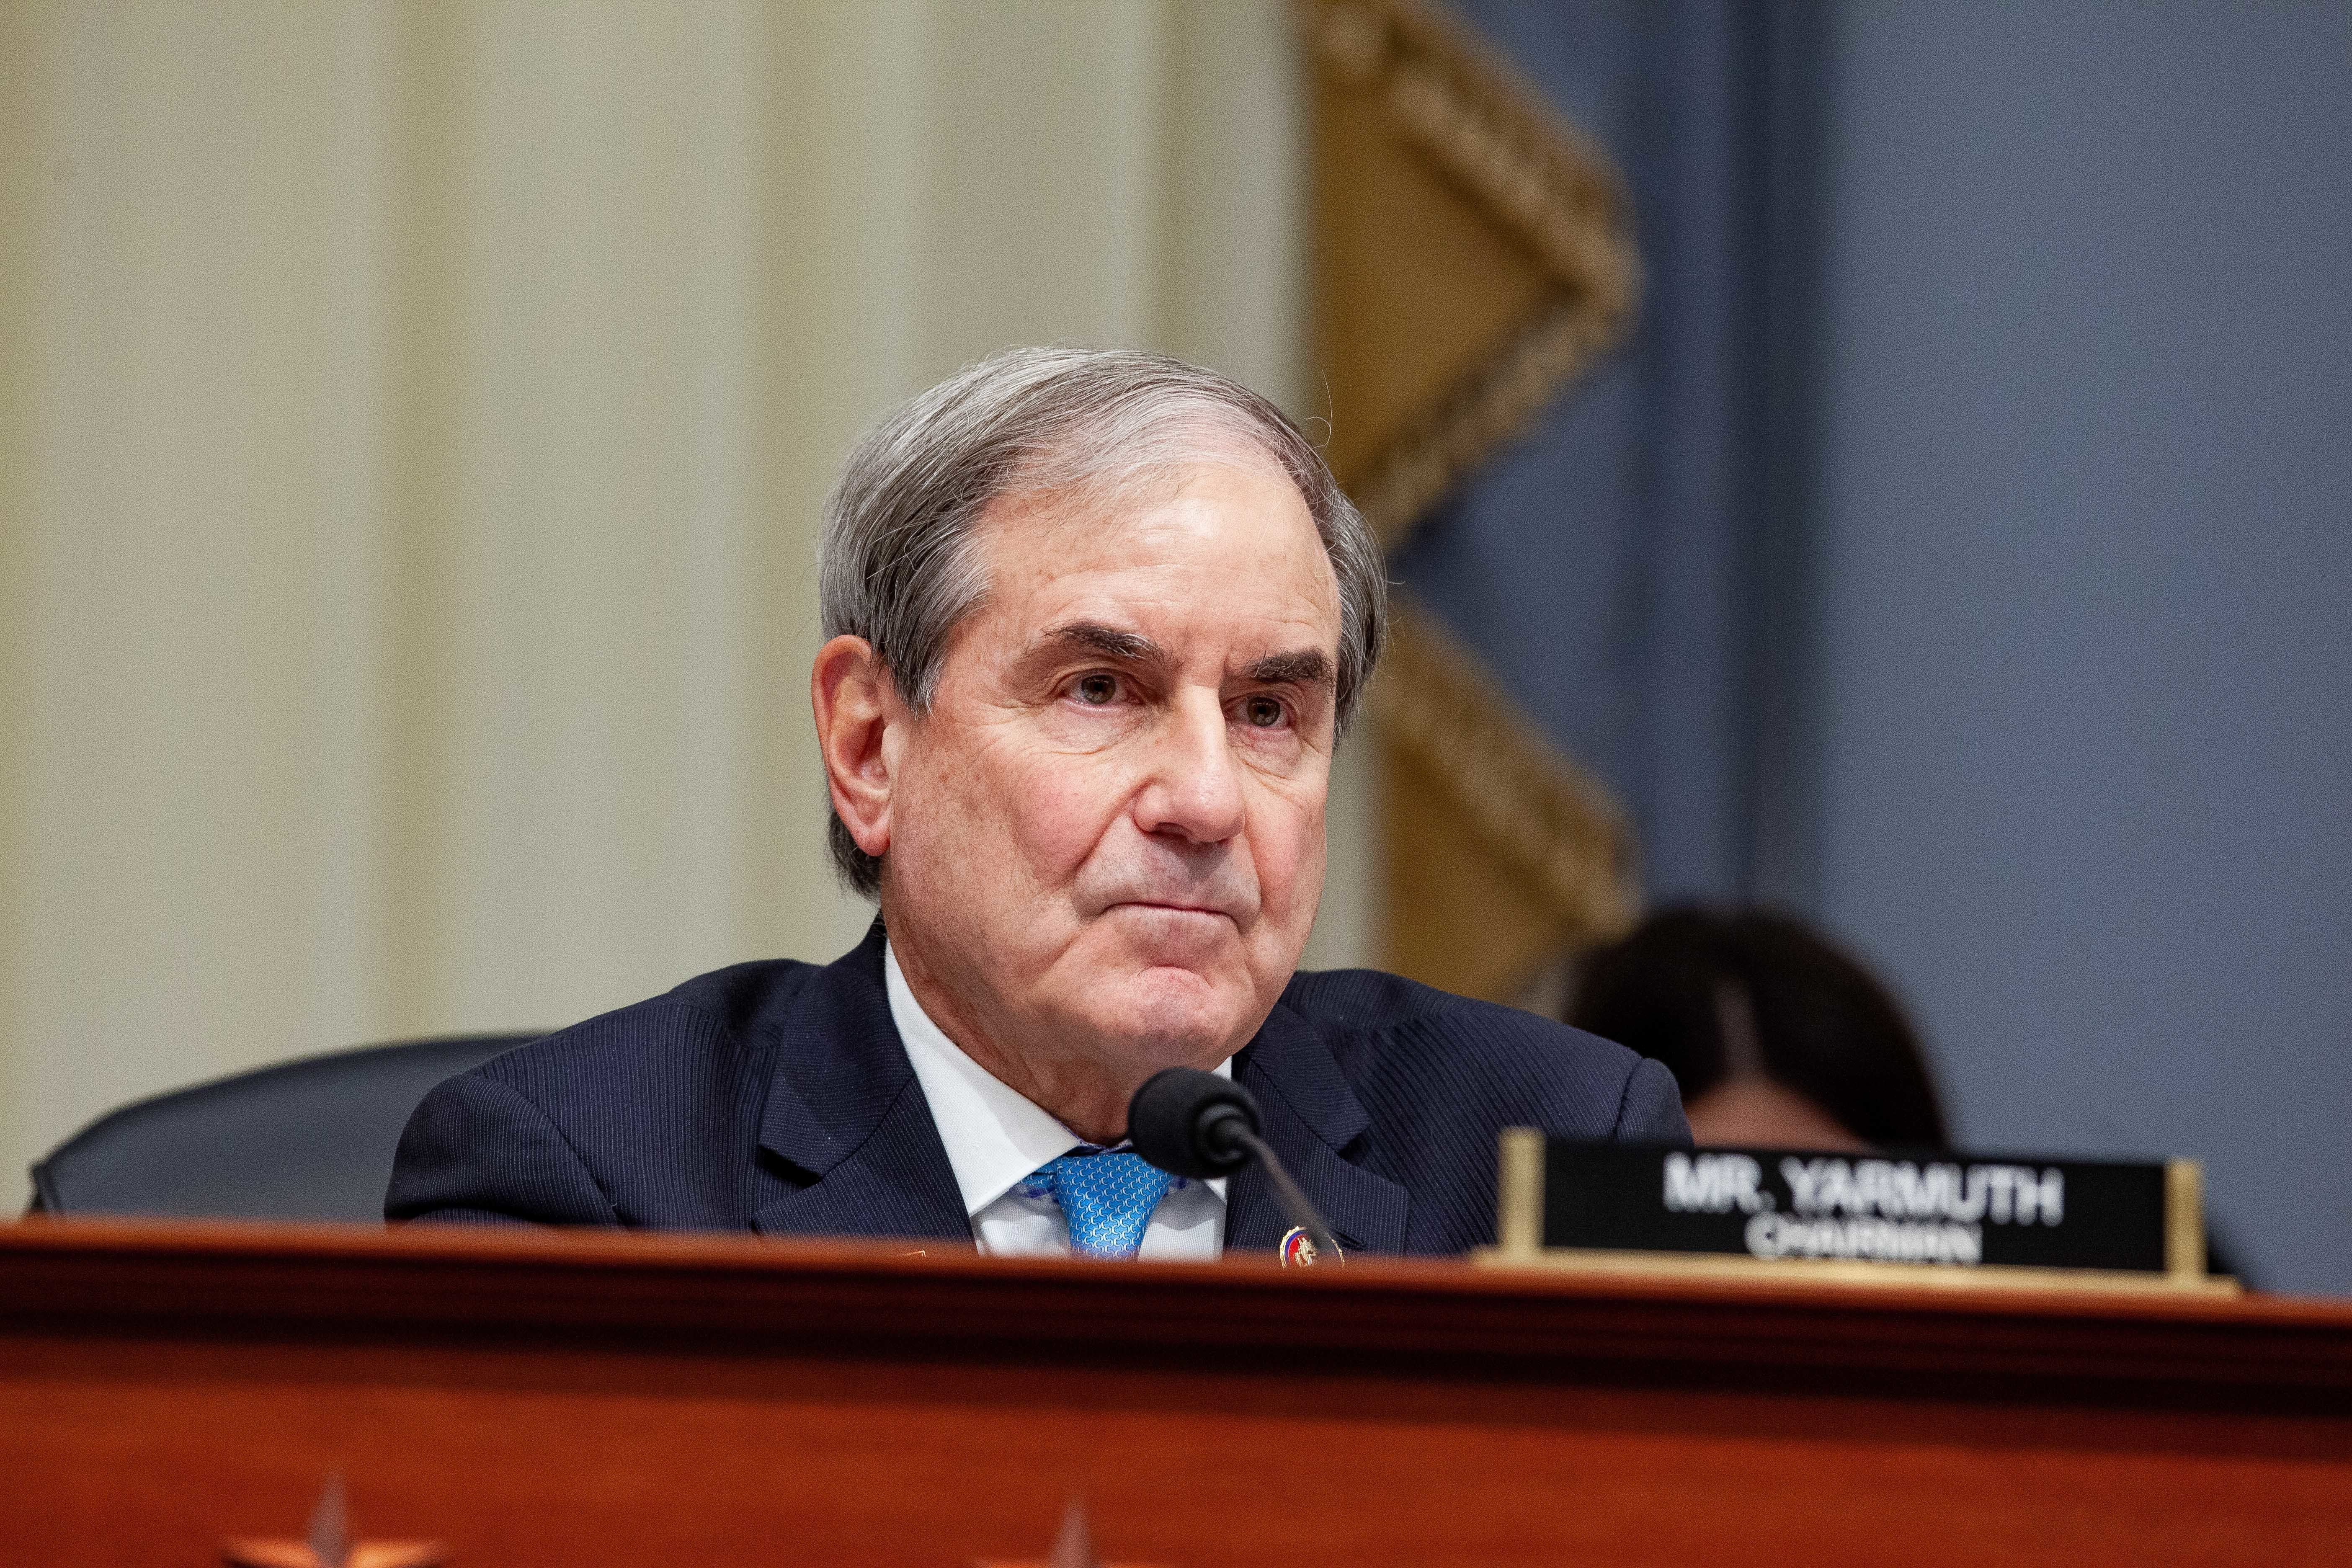 Representative John Yarmuth, a Democrat from Kentucky and chair of the House Budget Committee, listens during hearing with Russell Vought, acting director of the Office of Management and Budget (OMB), not pictured, in Washington, D.C., U.S., on Tuesday, March 12, 2019. President Donald Trump will propose a U.S. budget that wouldn't balance for 15 years, even assuming stronger economic growth than private forecasters expect and with deep domestic spending cuts that have little chance of passing Congress. Vought said in a statement the proposal 'embodies fiscal responsibility' and 'shows that we can return to fiscal sanity without halting our economic resurgence.' Photographer: Anna Moneymaker/Bloomberg via Getty Images